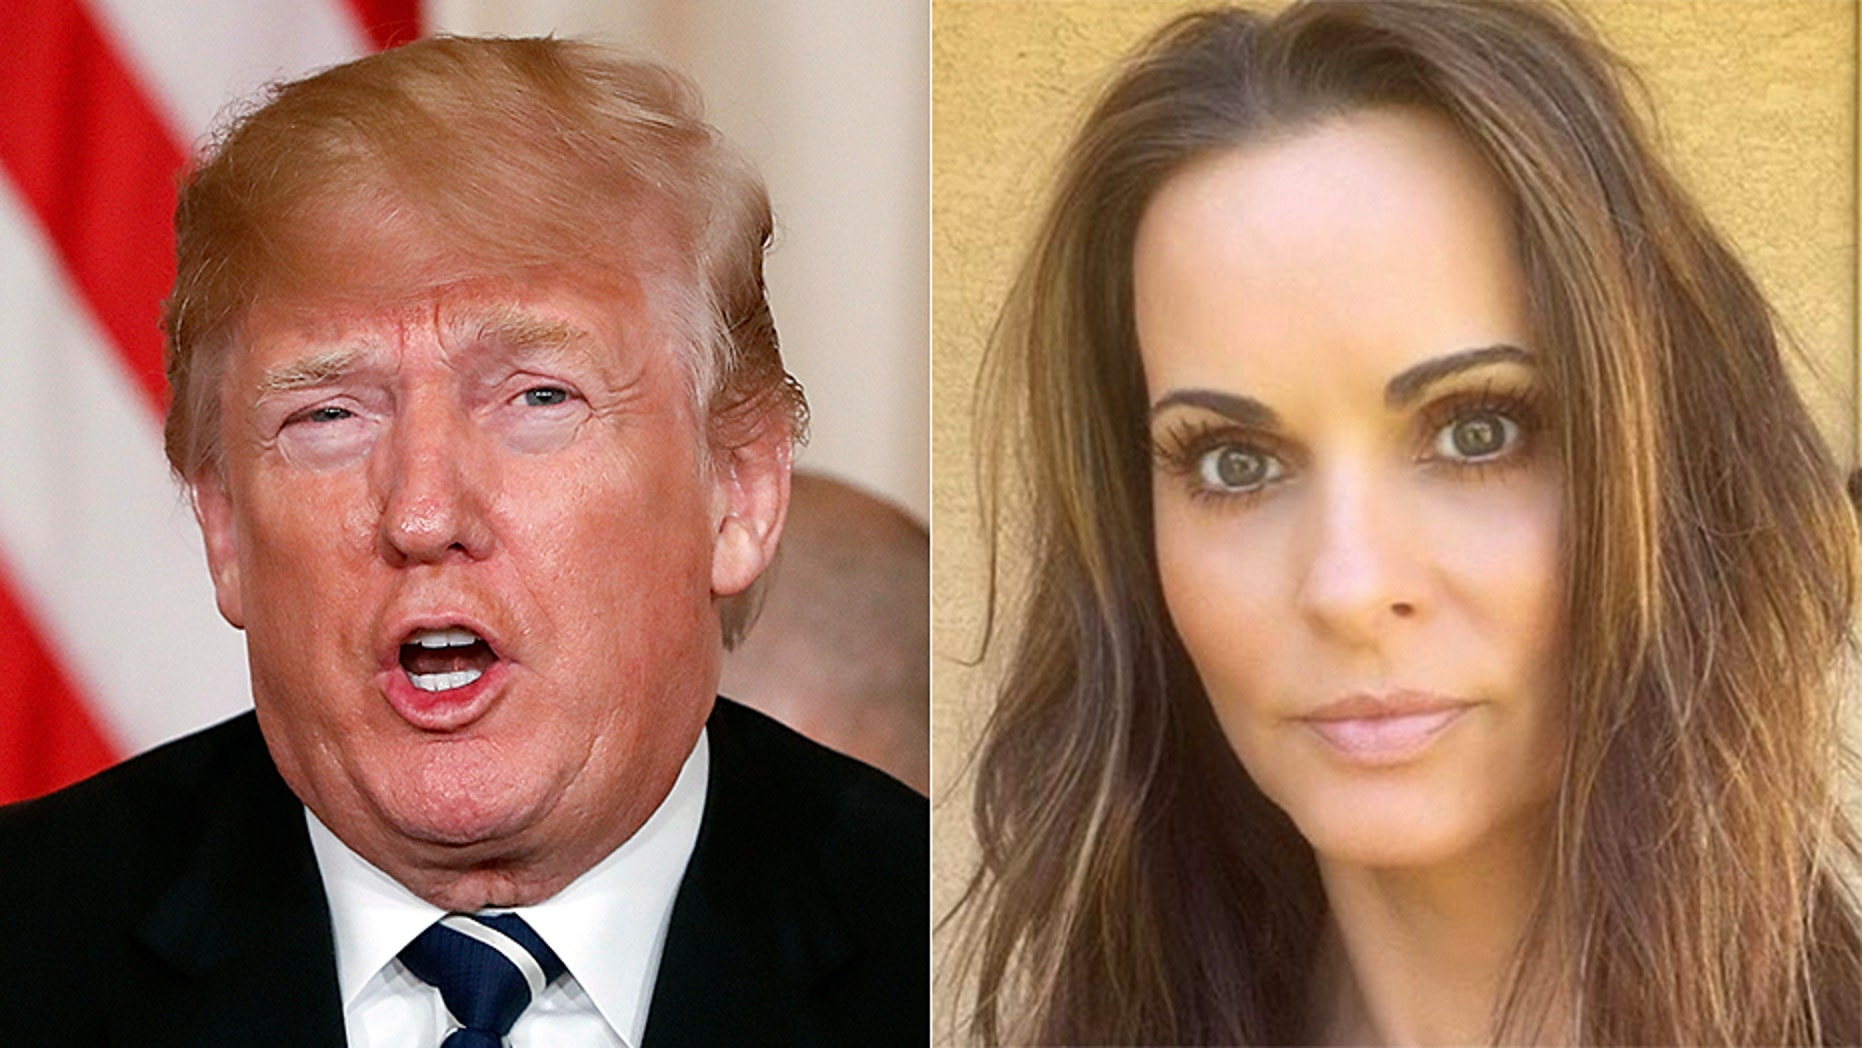 Former Playboy model Karen McDougal was paid by a tabloid magazine for the rights to her story about an alleged affair with President Trump.